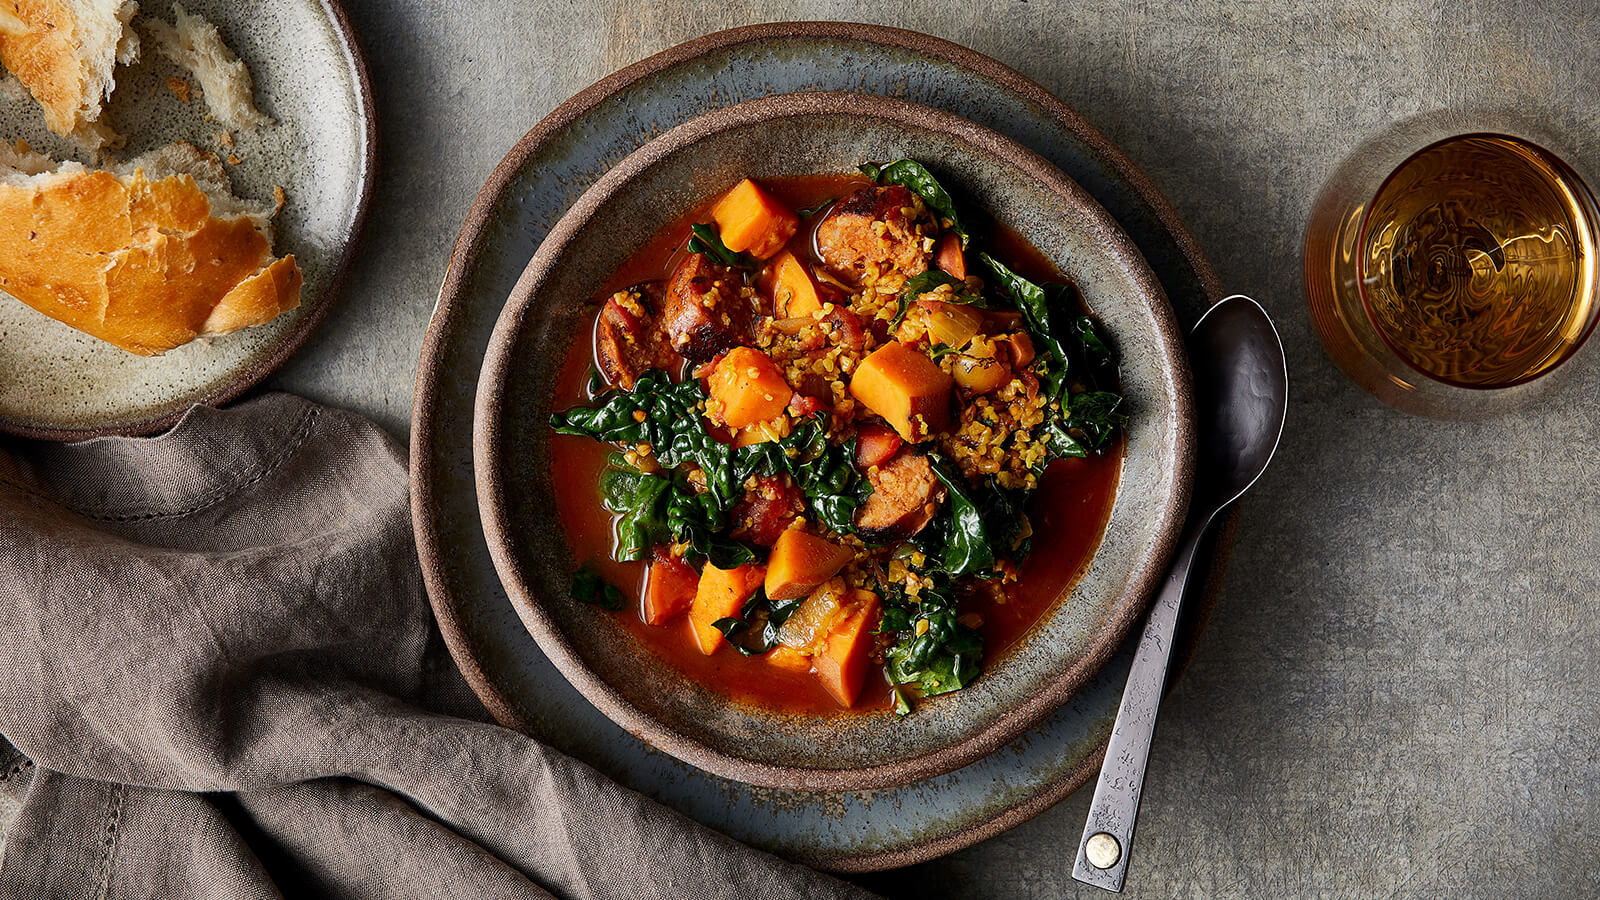 Sweet Potato, Kale & Chorizo Stew